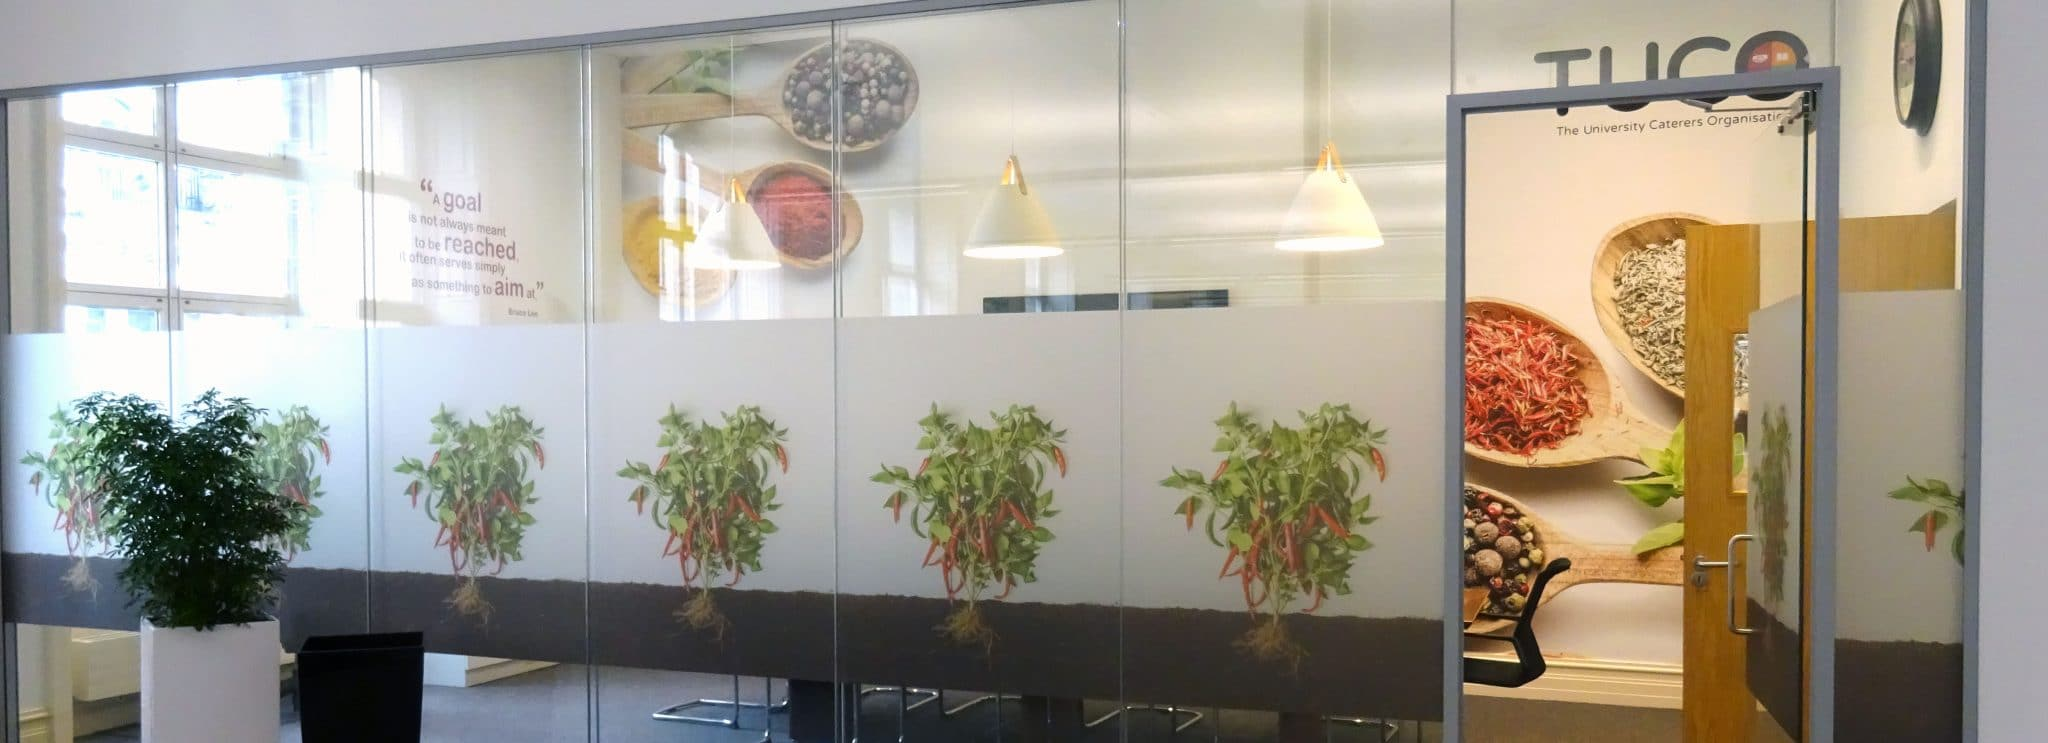 food wall art in boardroom